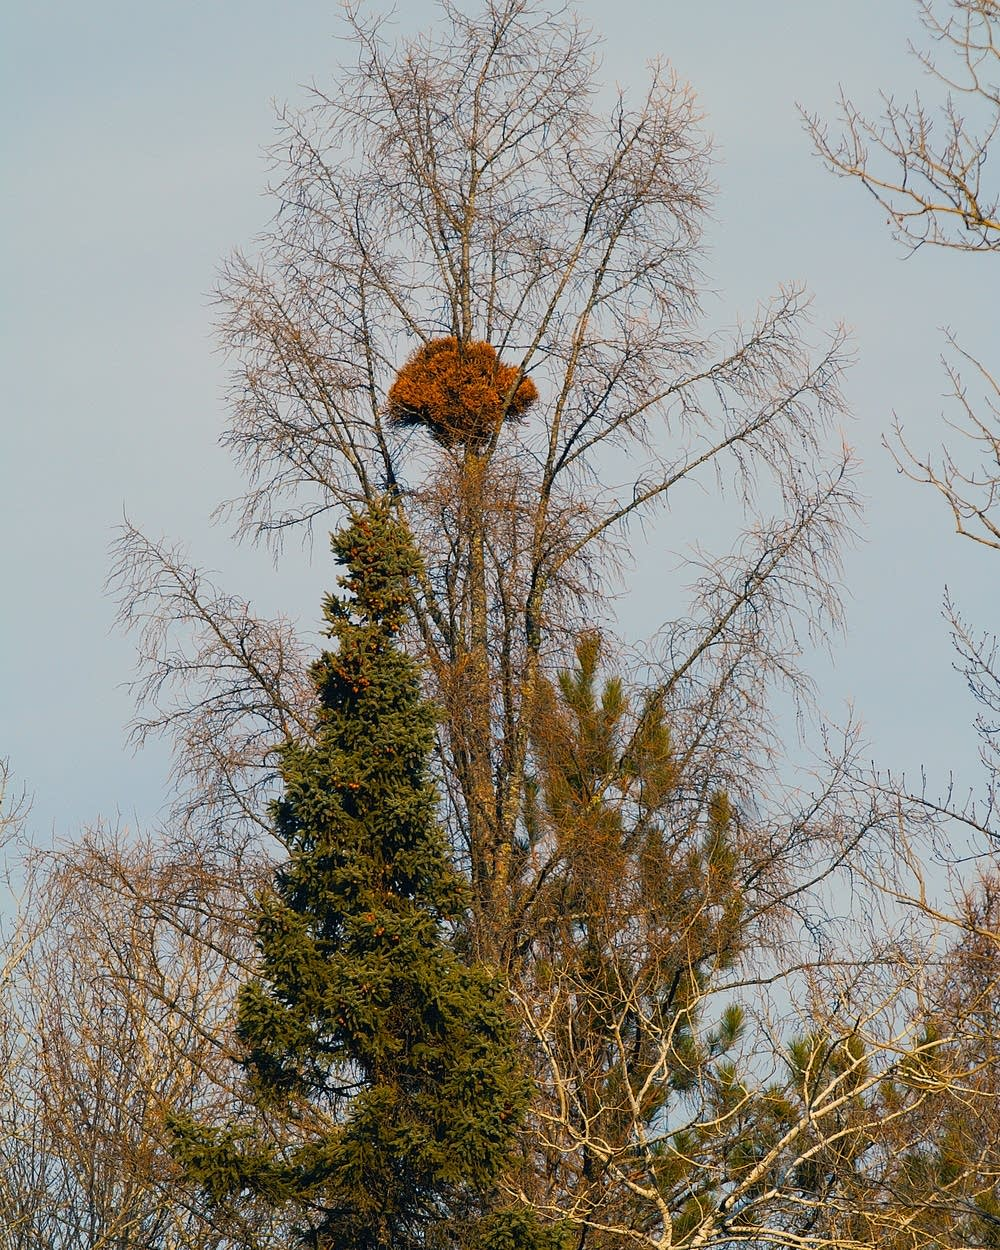 Plant fanatics climb up trees hunting for 'witch's brooms